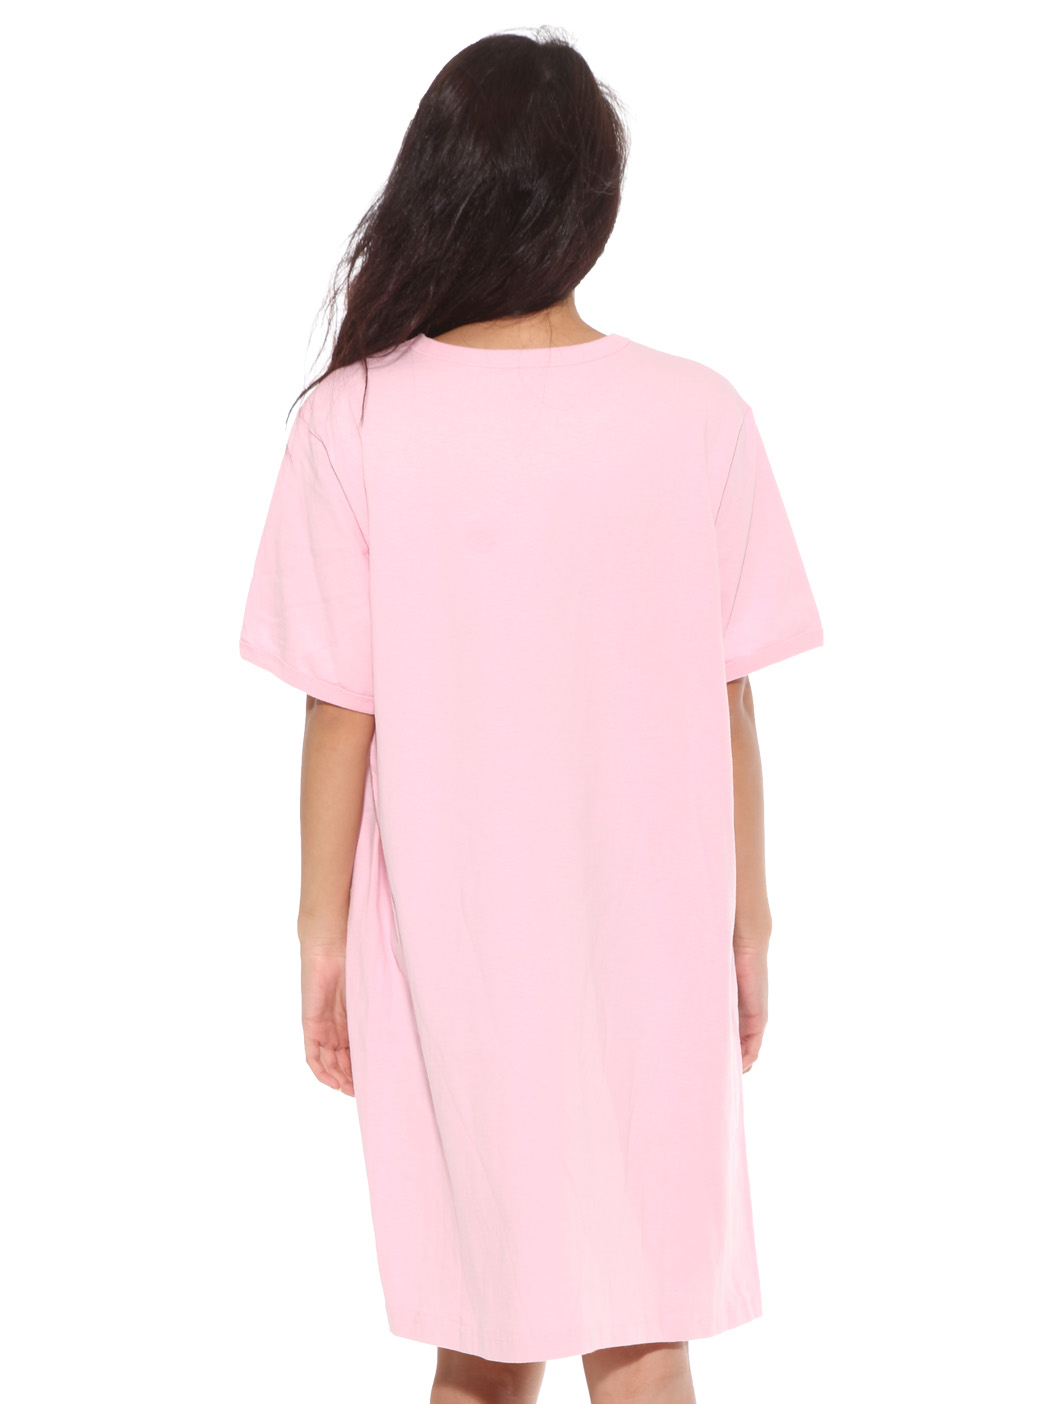 Minnie Mouse - I Don t Do Mornings Sleep Shirt Nightgown One Size Pink -  Walmart.com d9242b401